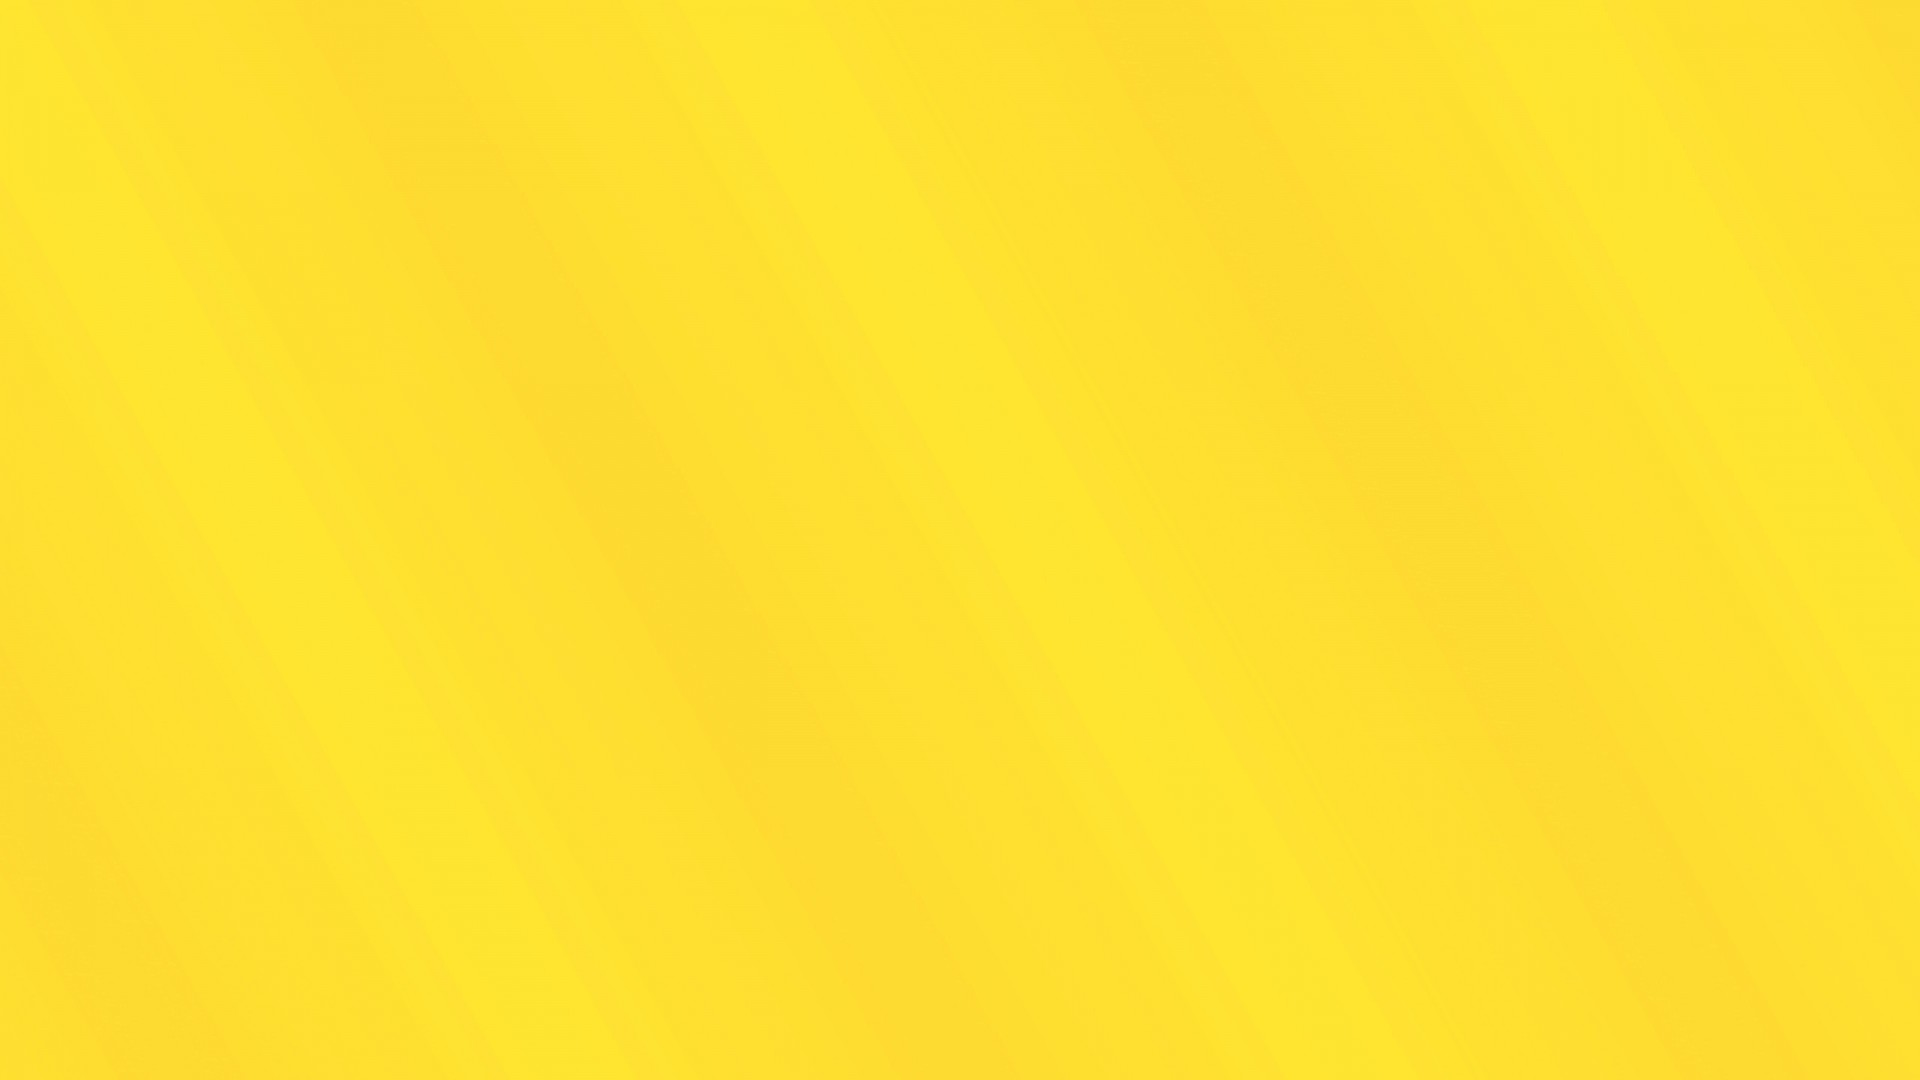 Yellow Background Free Stock Photo - Public Domain Pictures